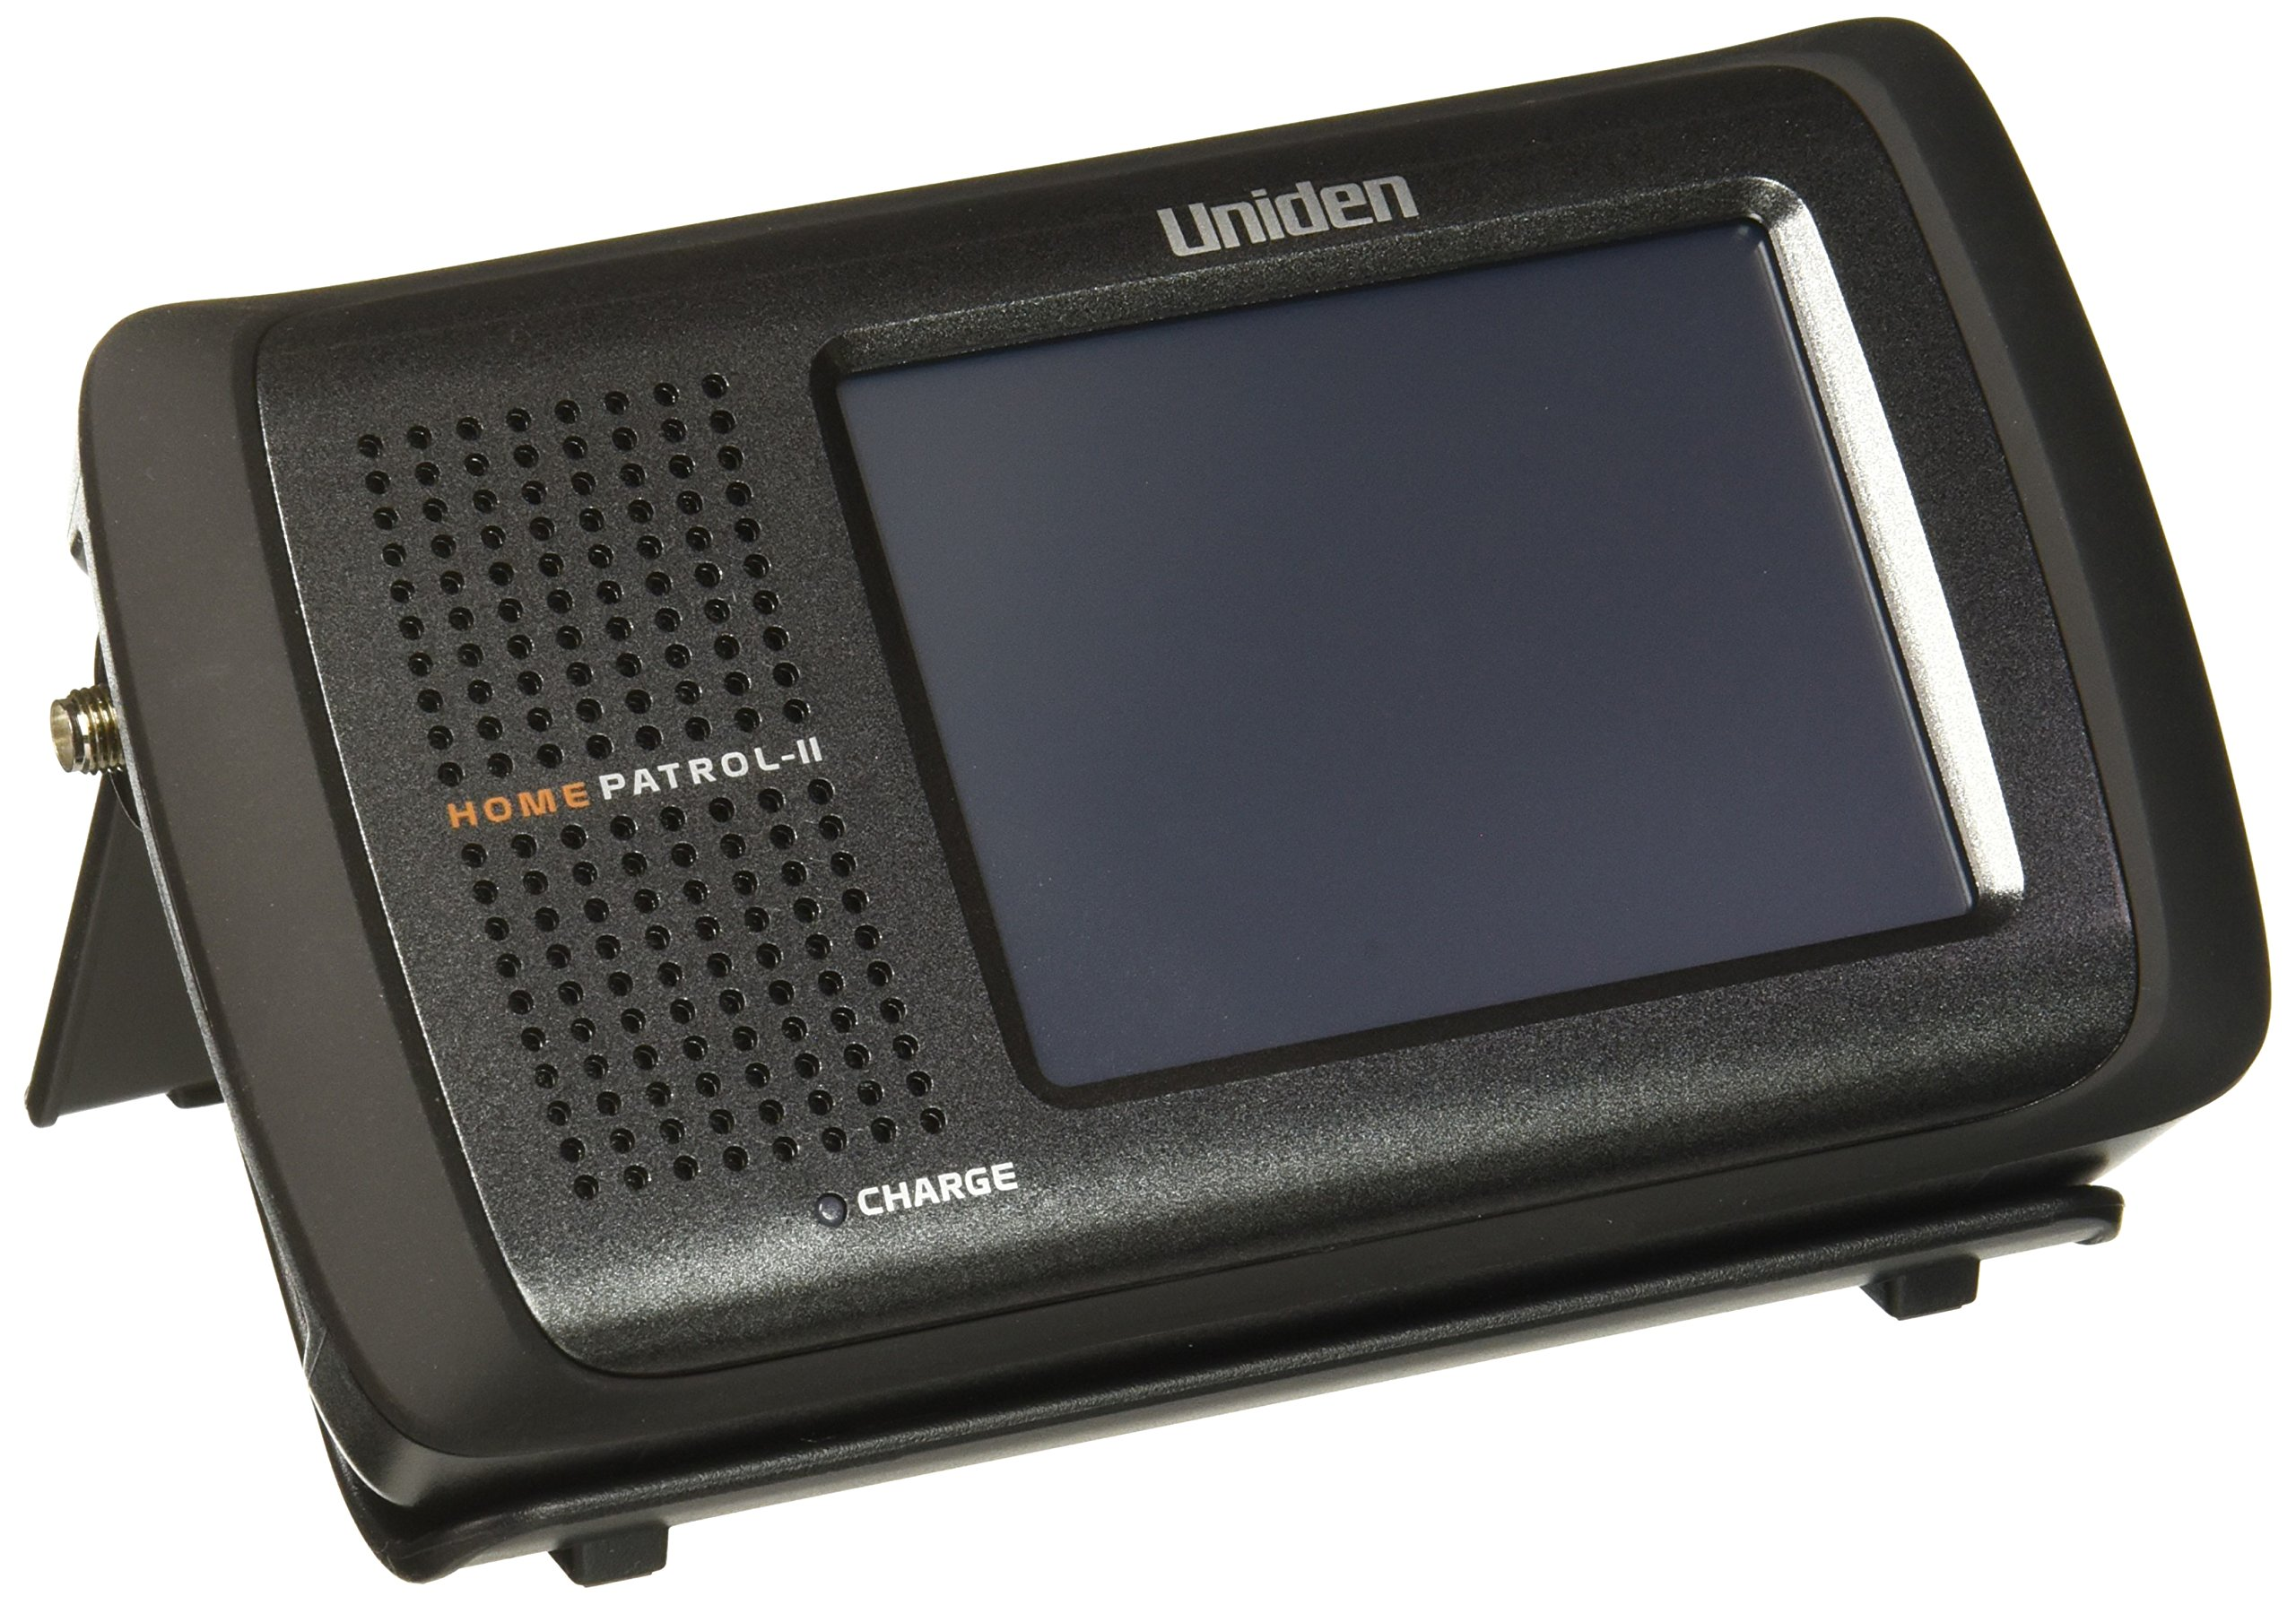 Uniden HomePatrol II TouchScreen Digital Scanner APCO P25 Phase 1 and 2 ! by Uniden